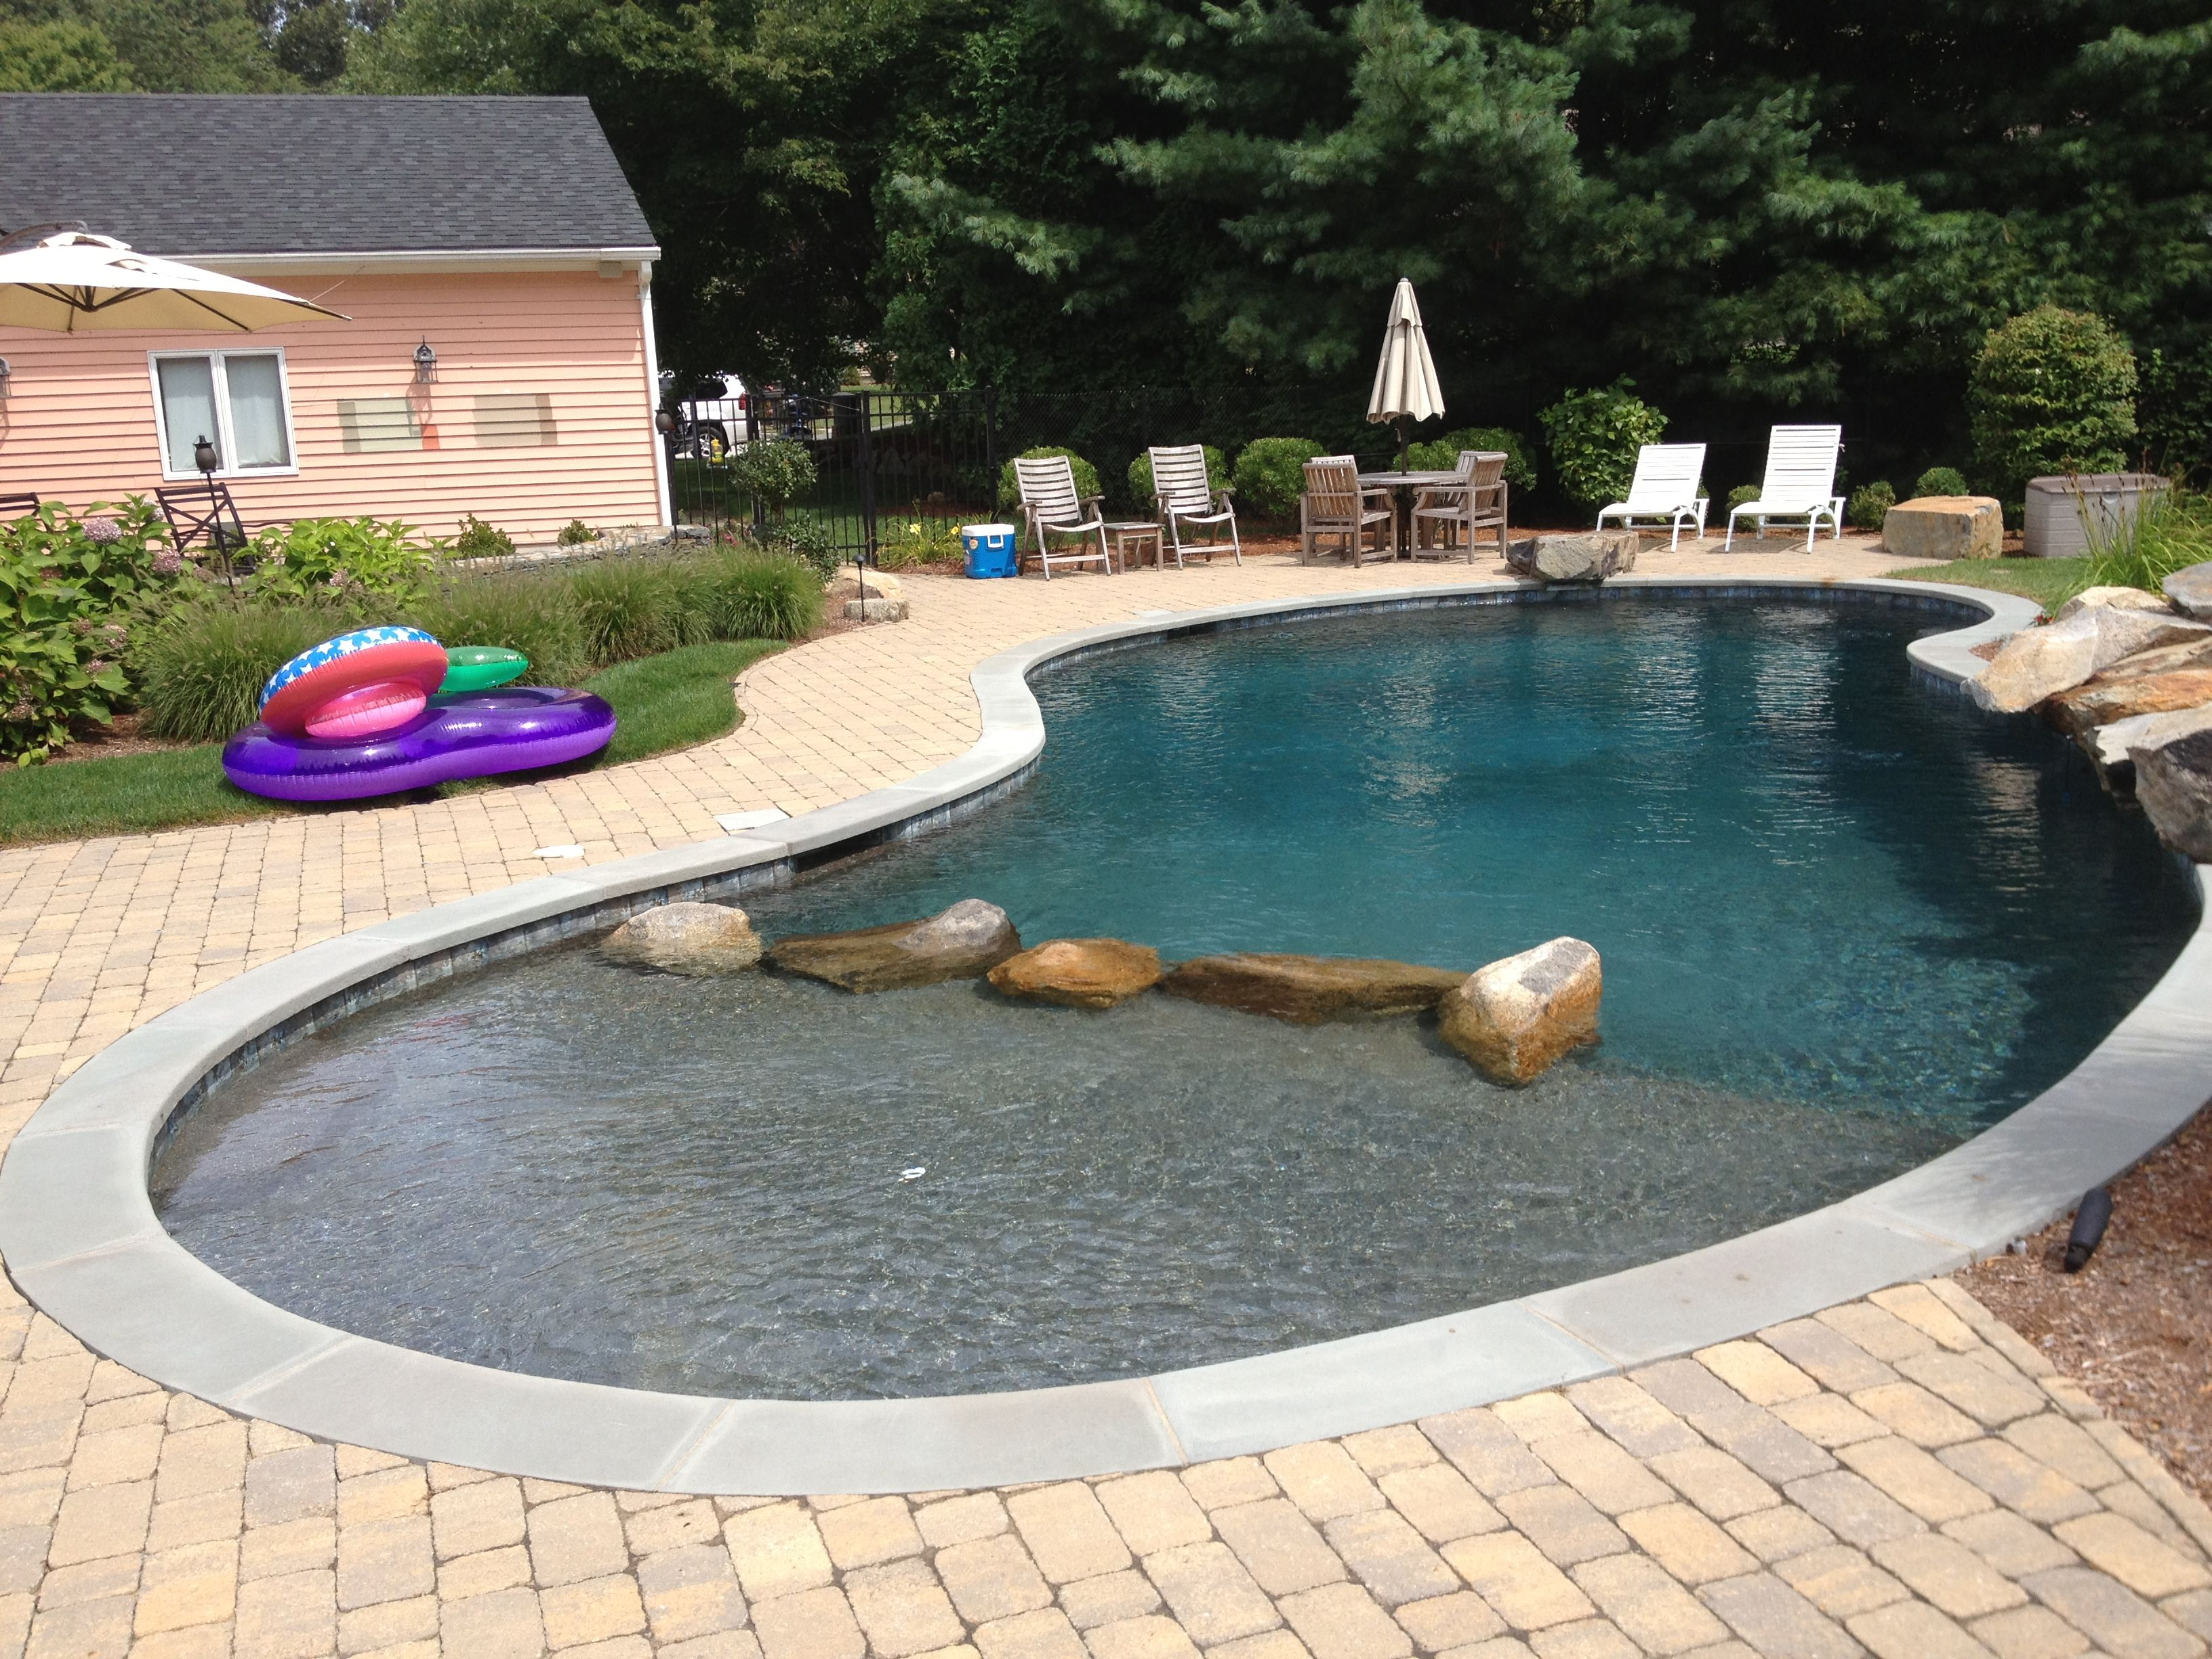 freeform gunite pool in warwick, ri - dynasty gunite & fiberglass